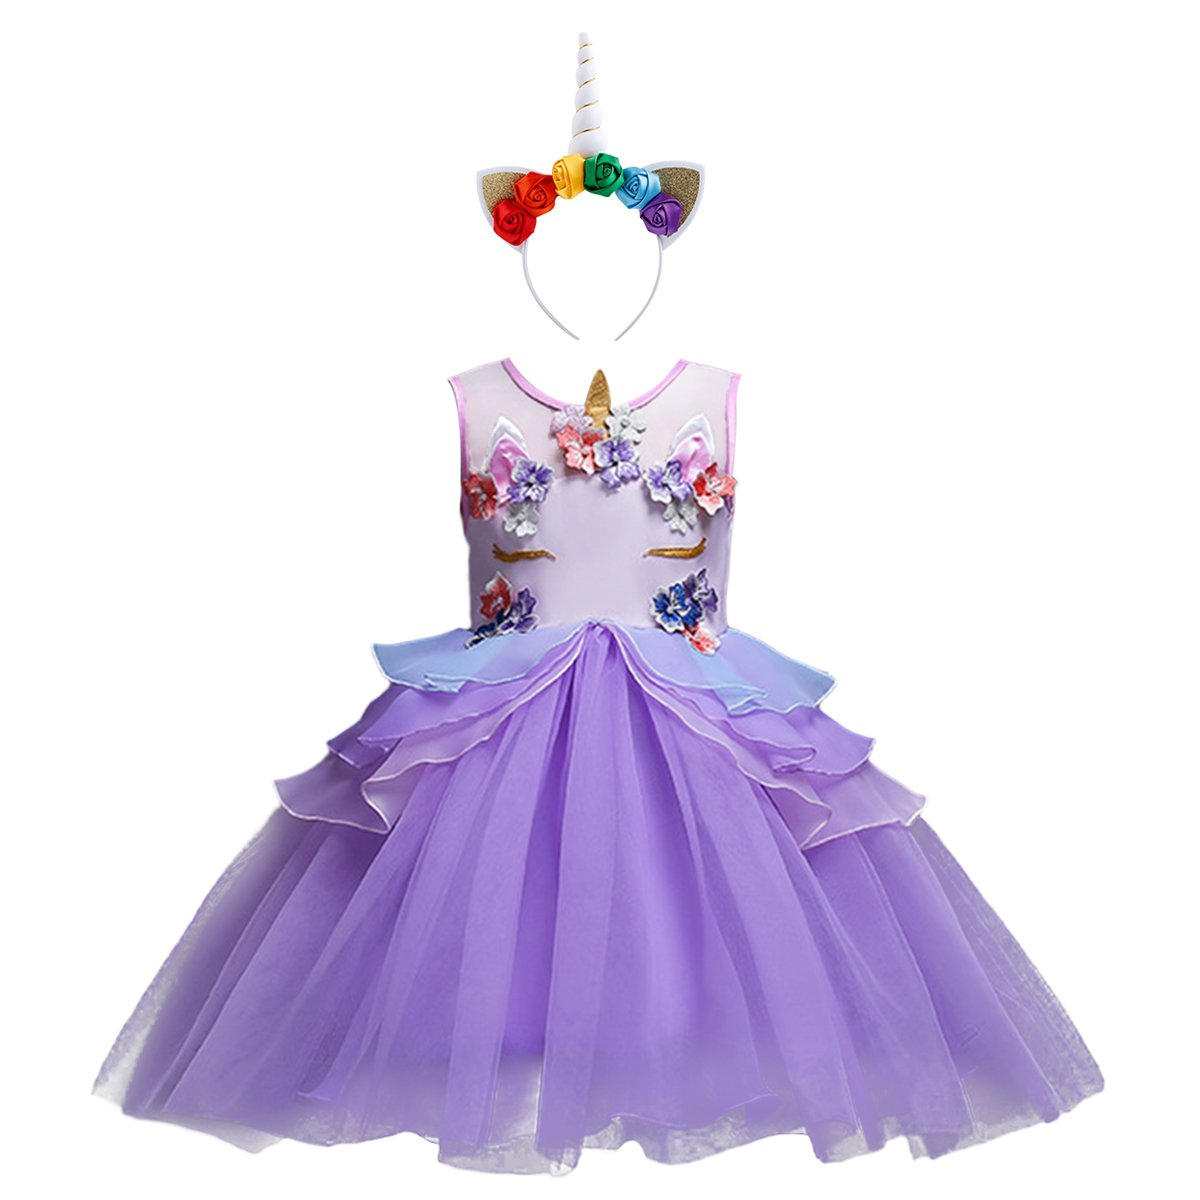 Baby Kids Girls Toddler Unicorn Dress Sleeveless Princess Tulle Dress Wedding Birthday Party Gown Performance Costume S# Purple 6-7 Years